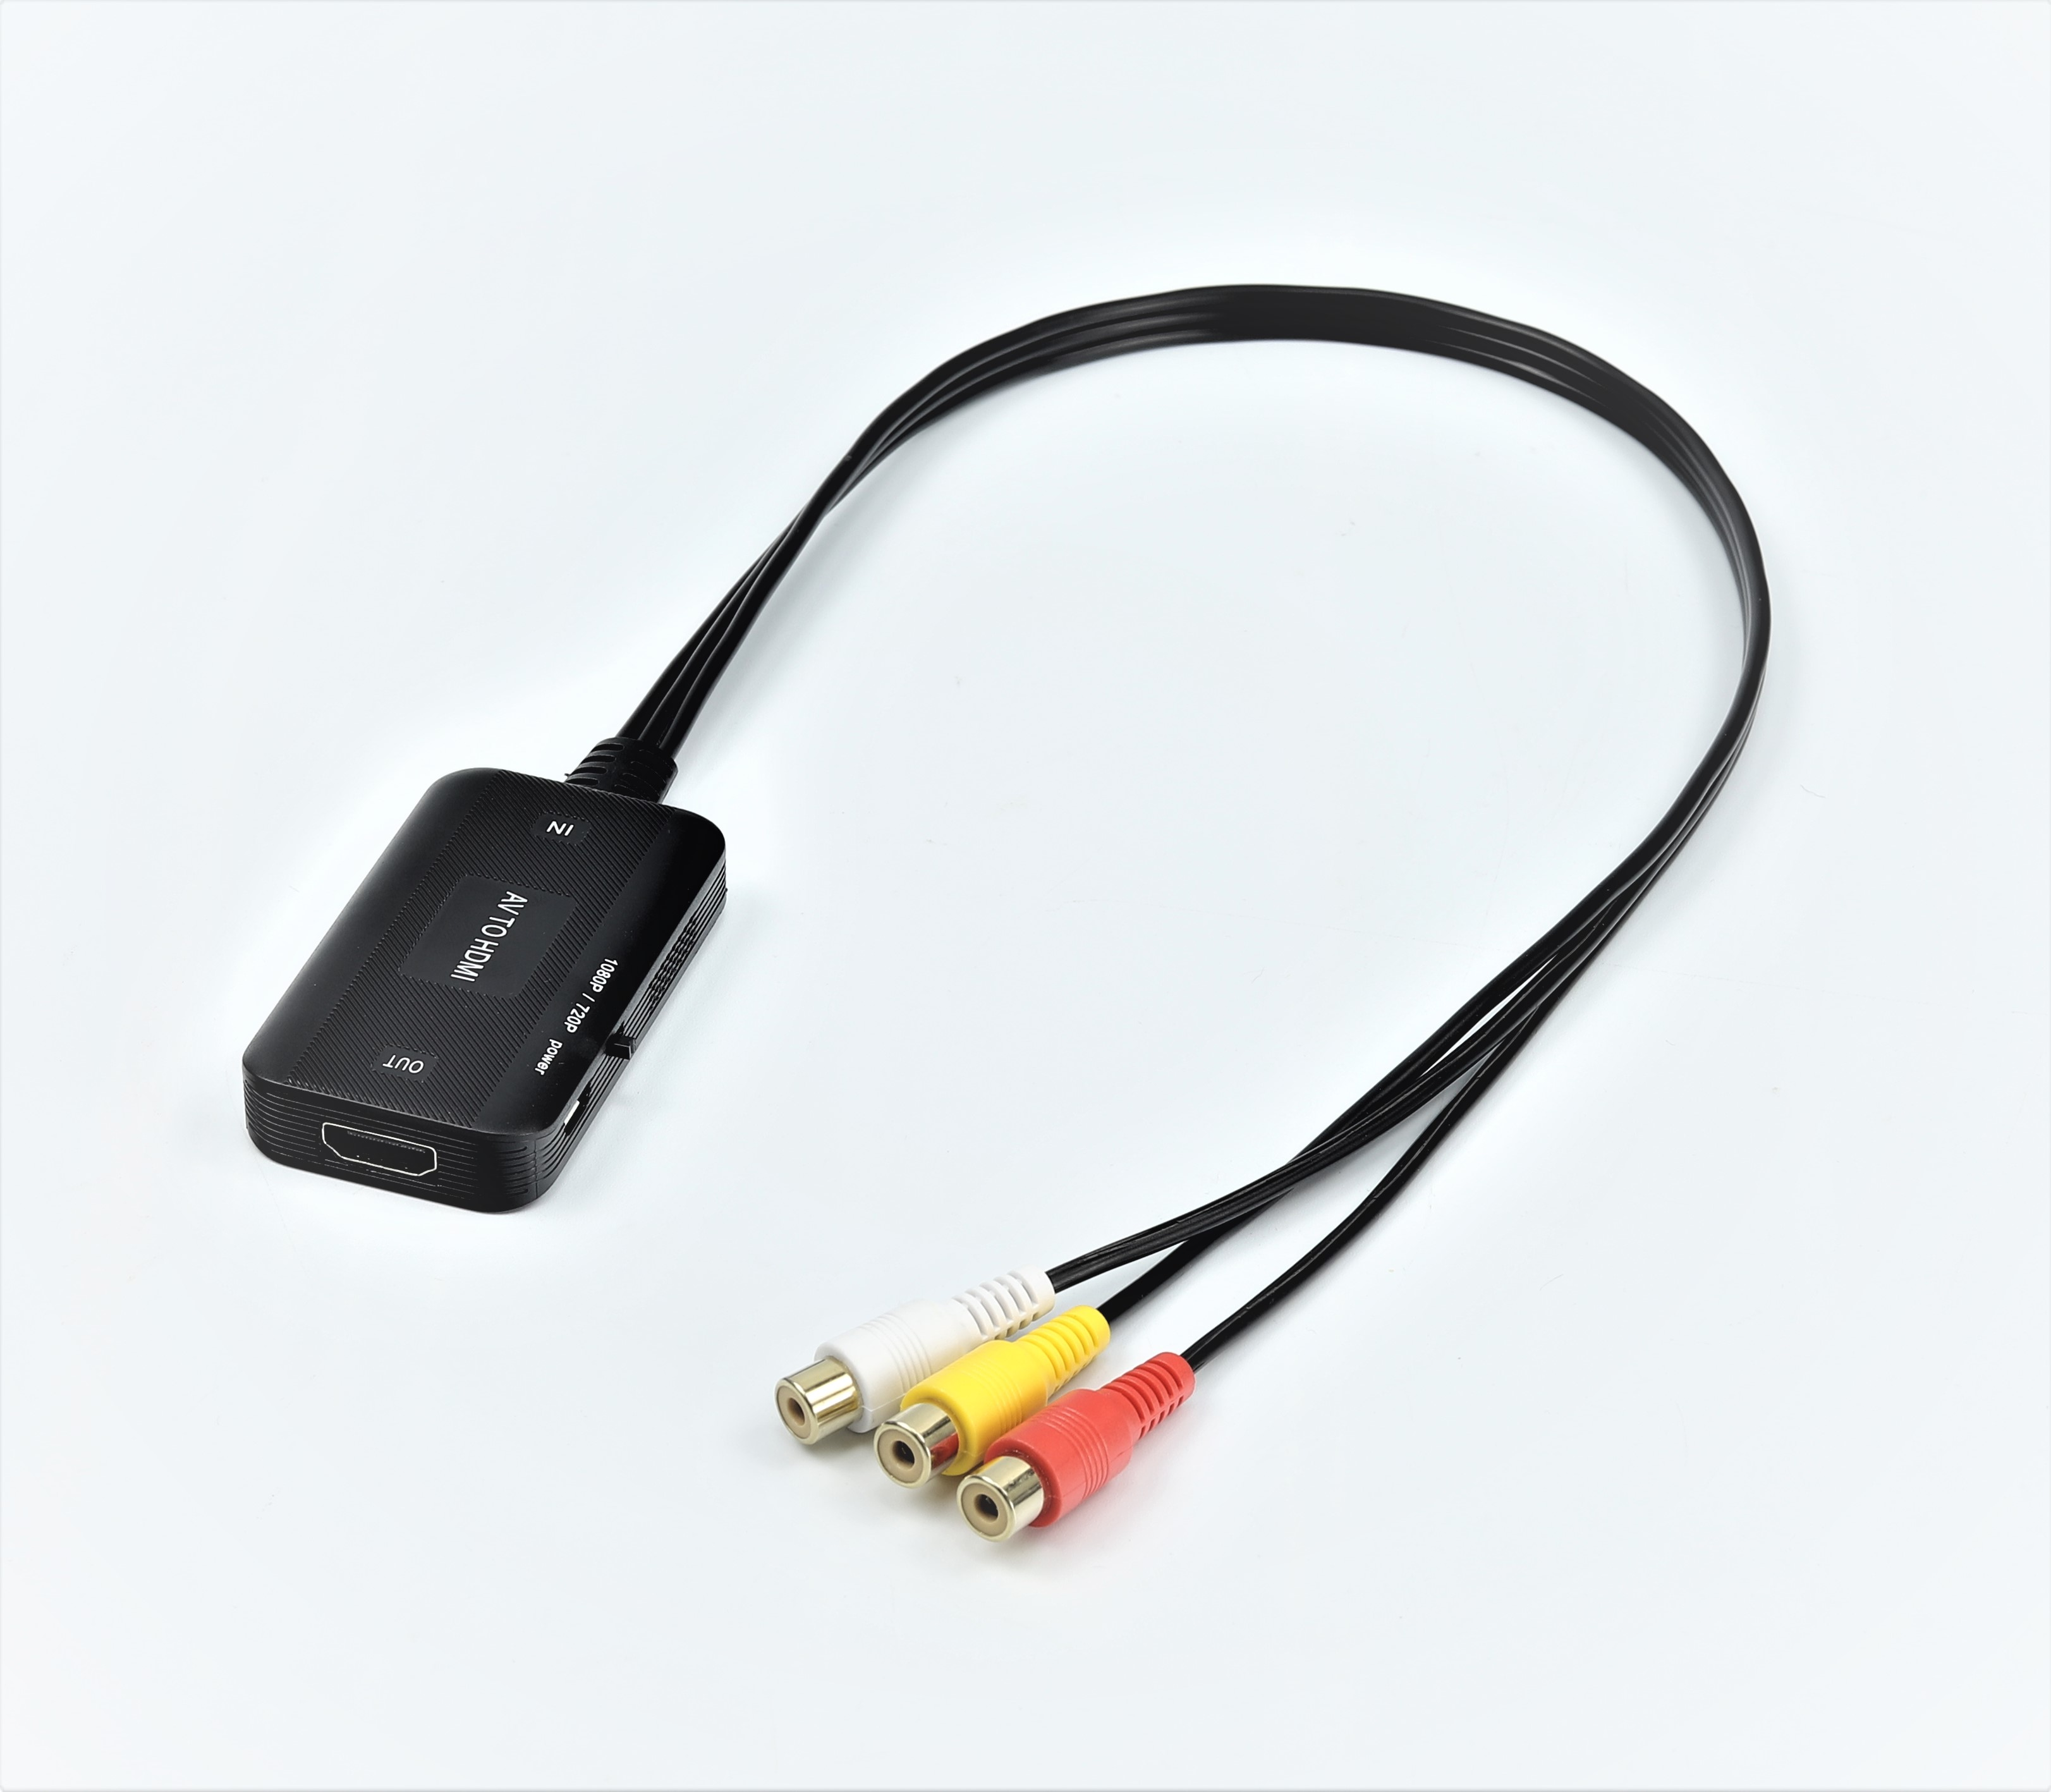 AV to HDMI converter cable